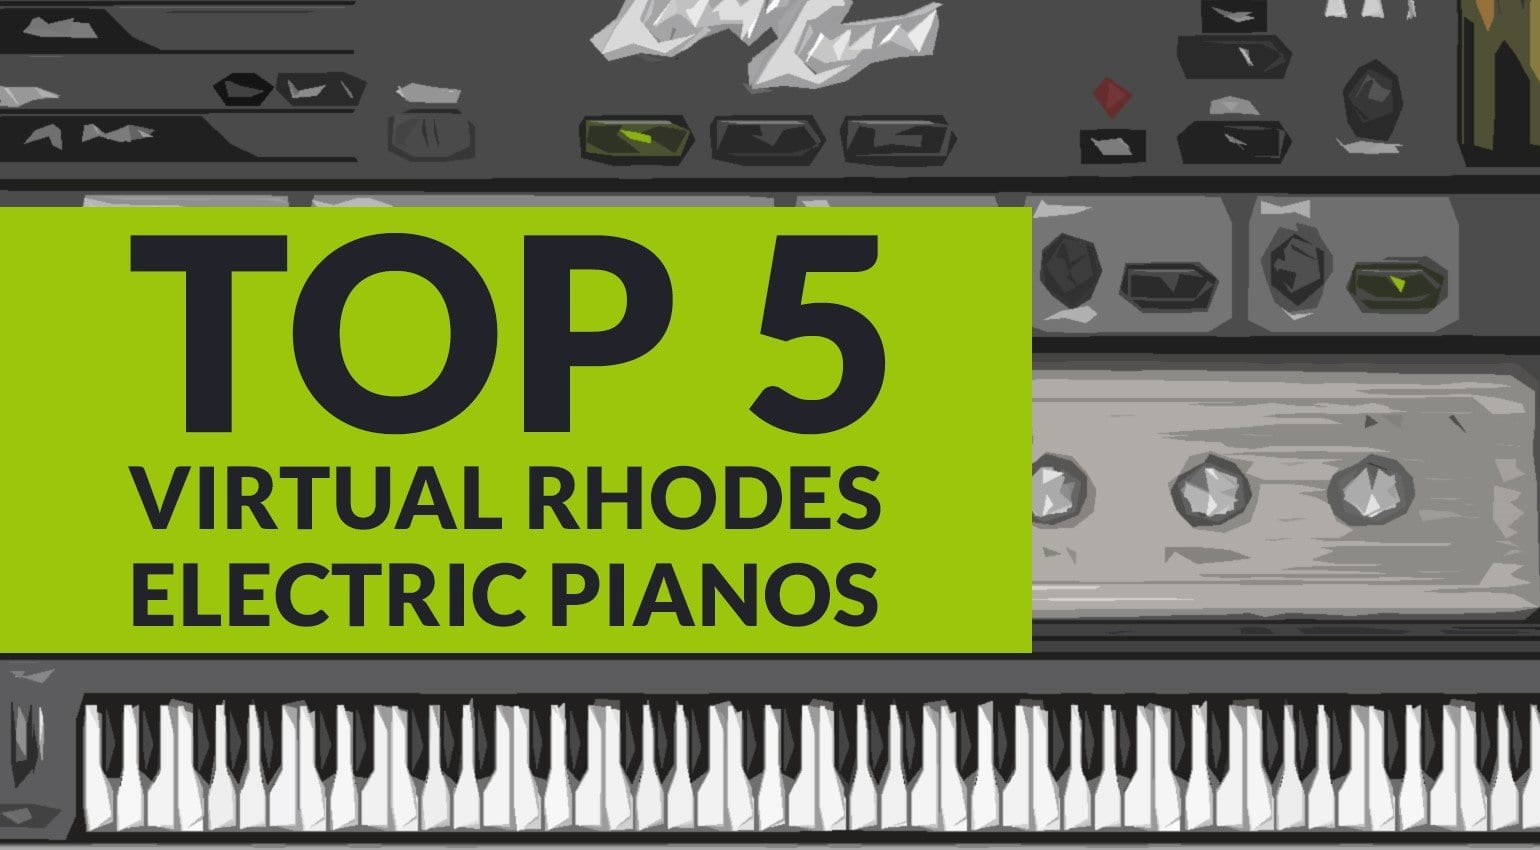 BEHRINGER 4FRONT RHODES MODULE DRIVERS FOR WINDOWS MAC